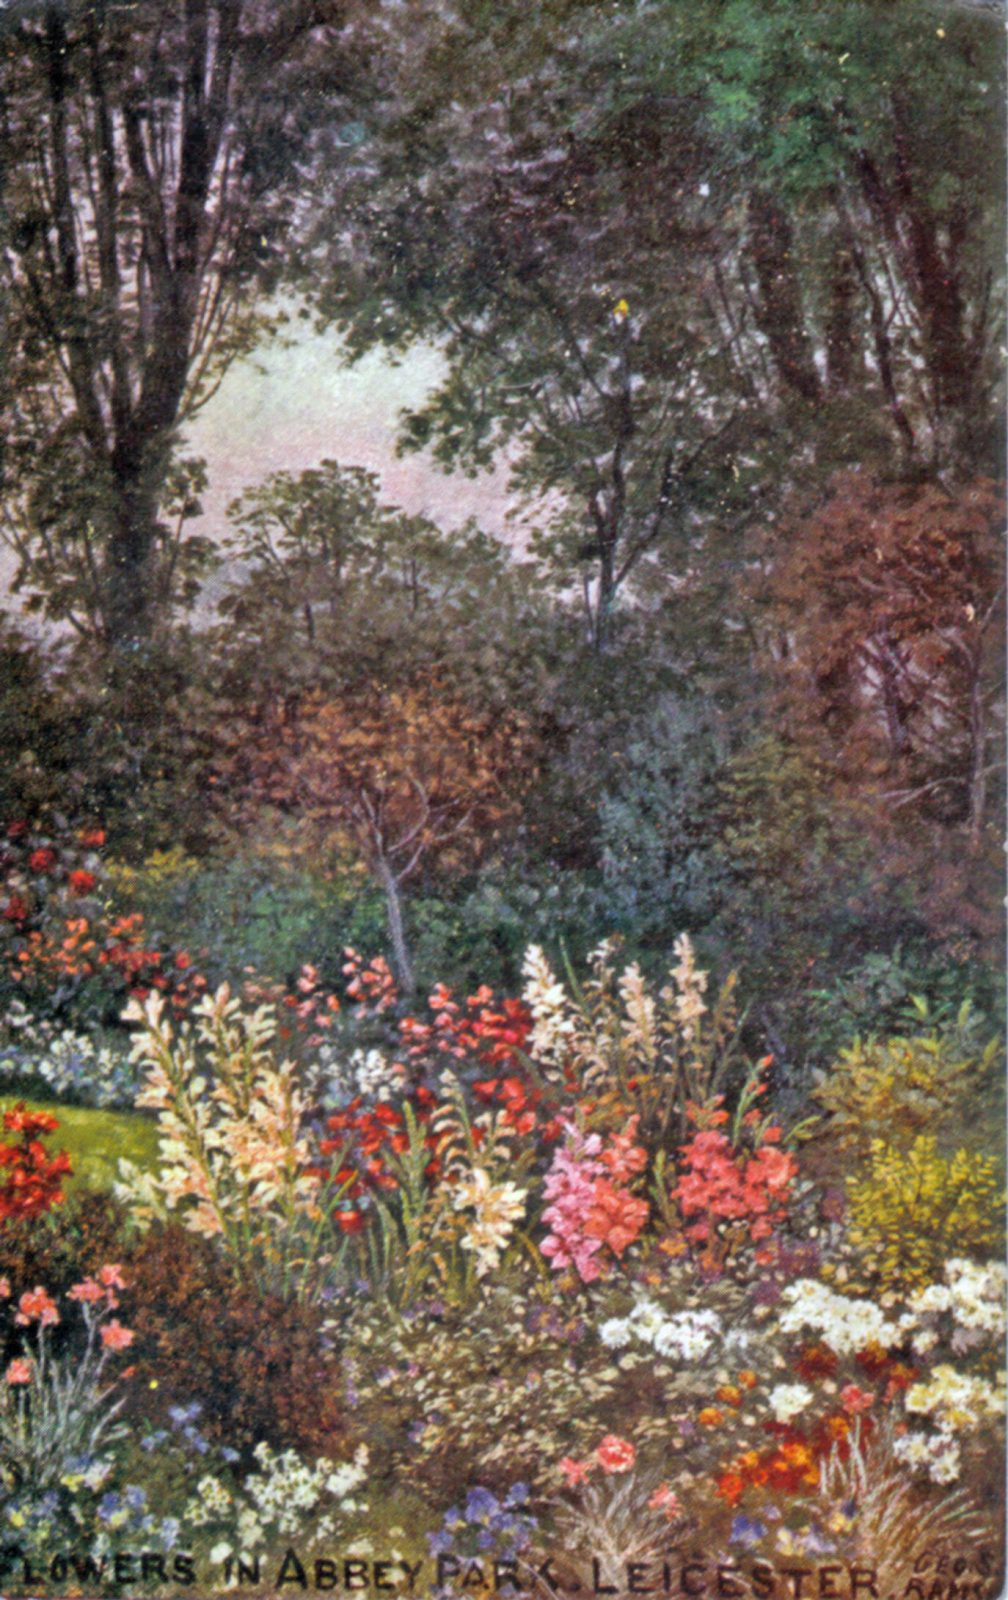 Abbey Park, Leicester. 1901-1920: Flowers in Abbey Park. From an oil painting by Geo. S. Ramsey. Franked 1912 (File:1210)